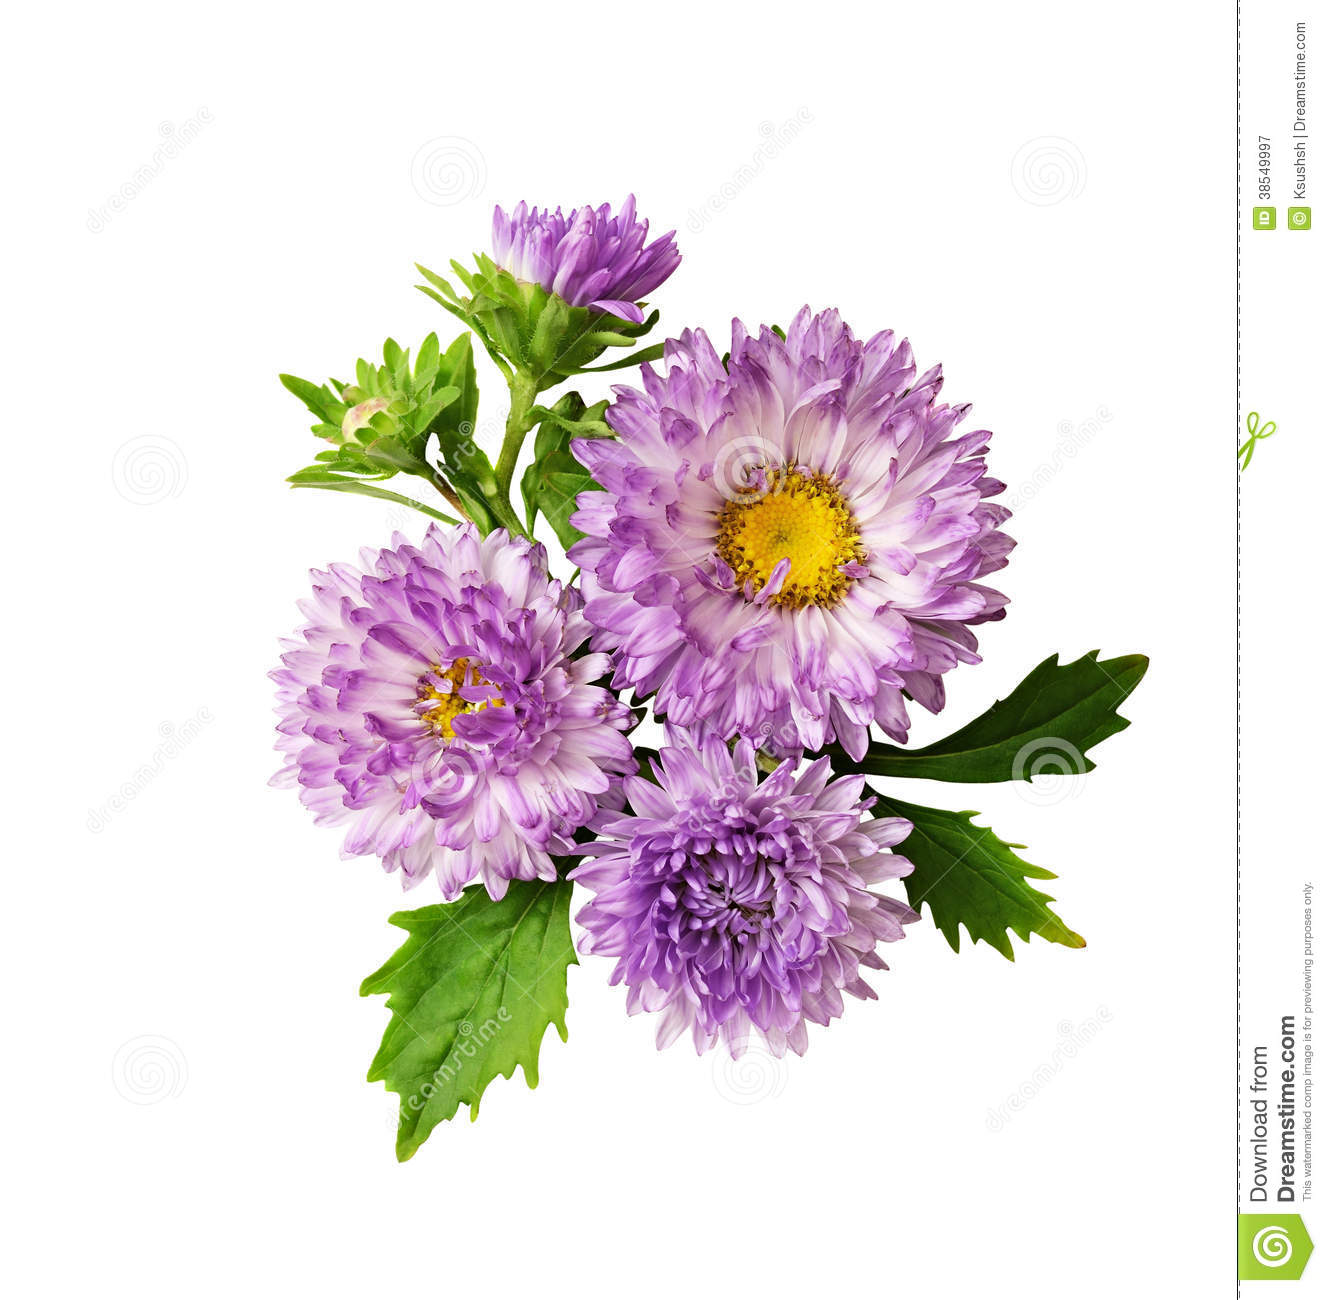 Favorite Aster Flower Flowers And Leaves Plants